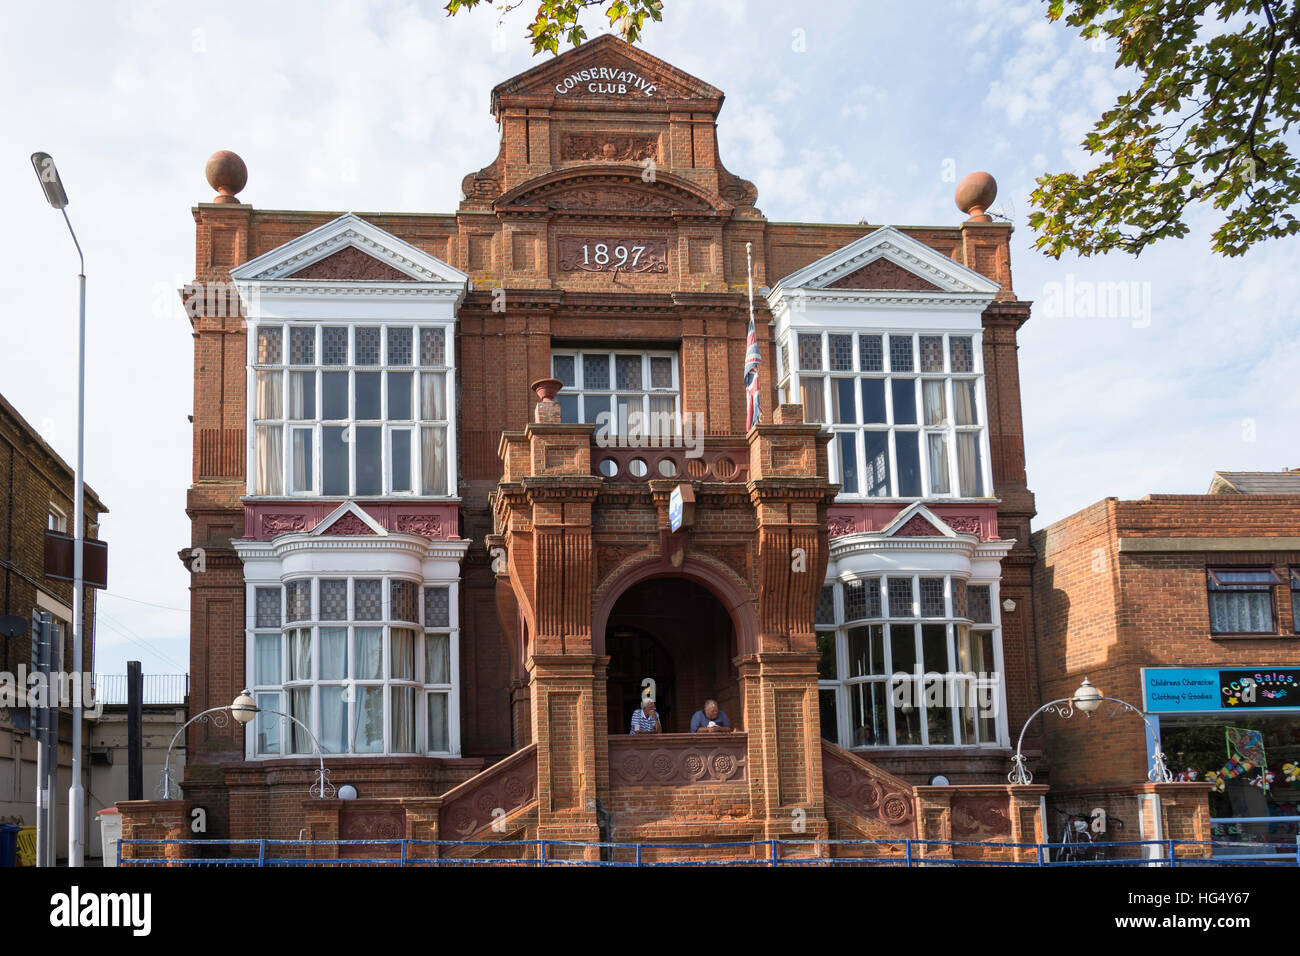 Sheerness Conservative Club, Broadway, Sheerness, Isle of Sheppey, Kent, England, United Kingdom - Stock Image